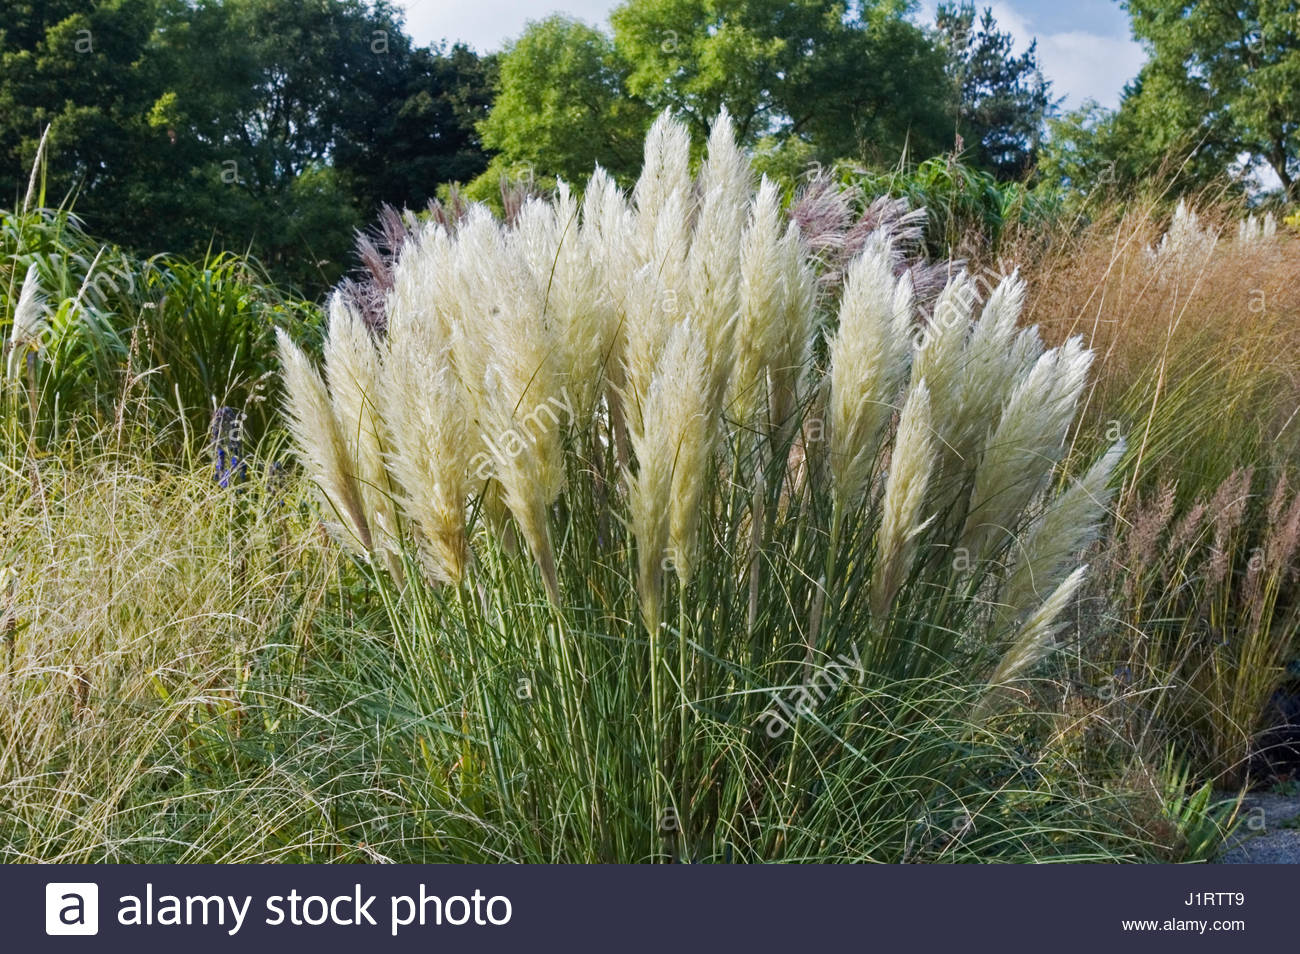 cortaderia selloana pumila stock photos cortaderia. Black Bedroom Furniture Sets. Home Design Ideas